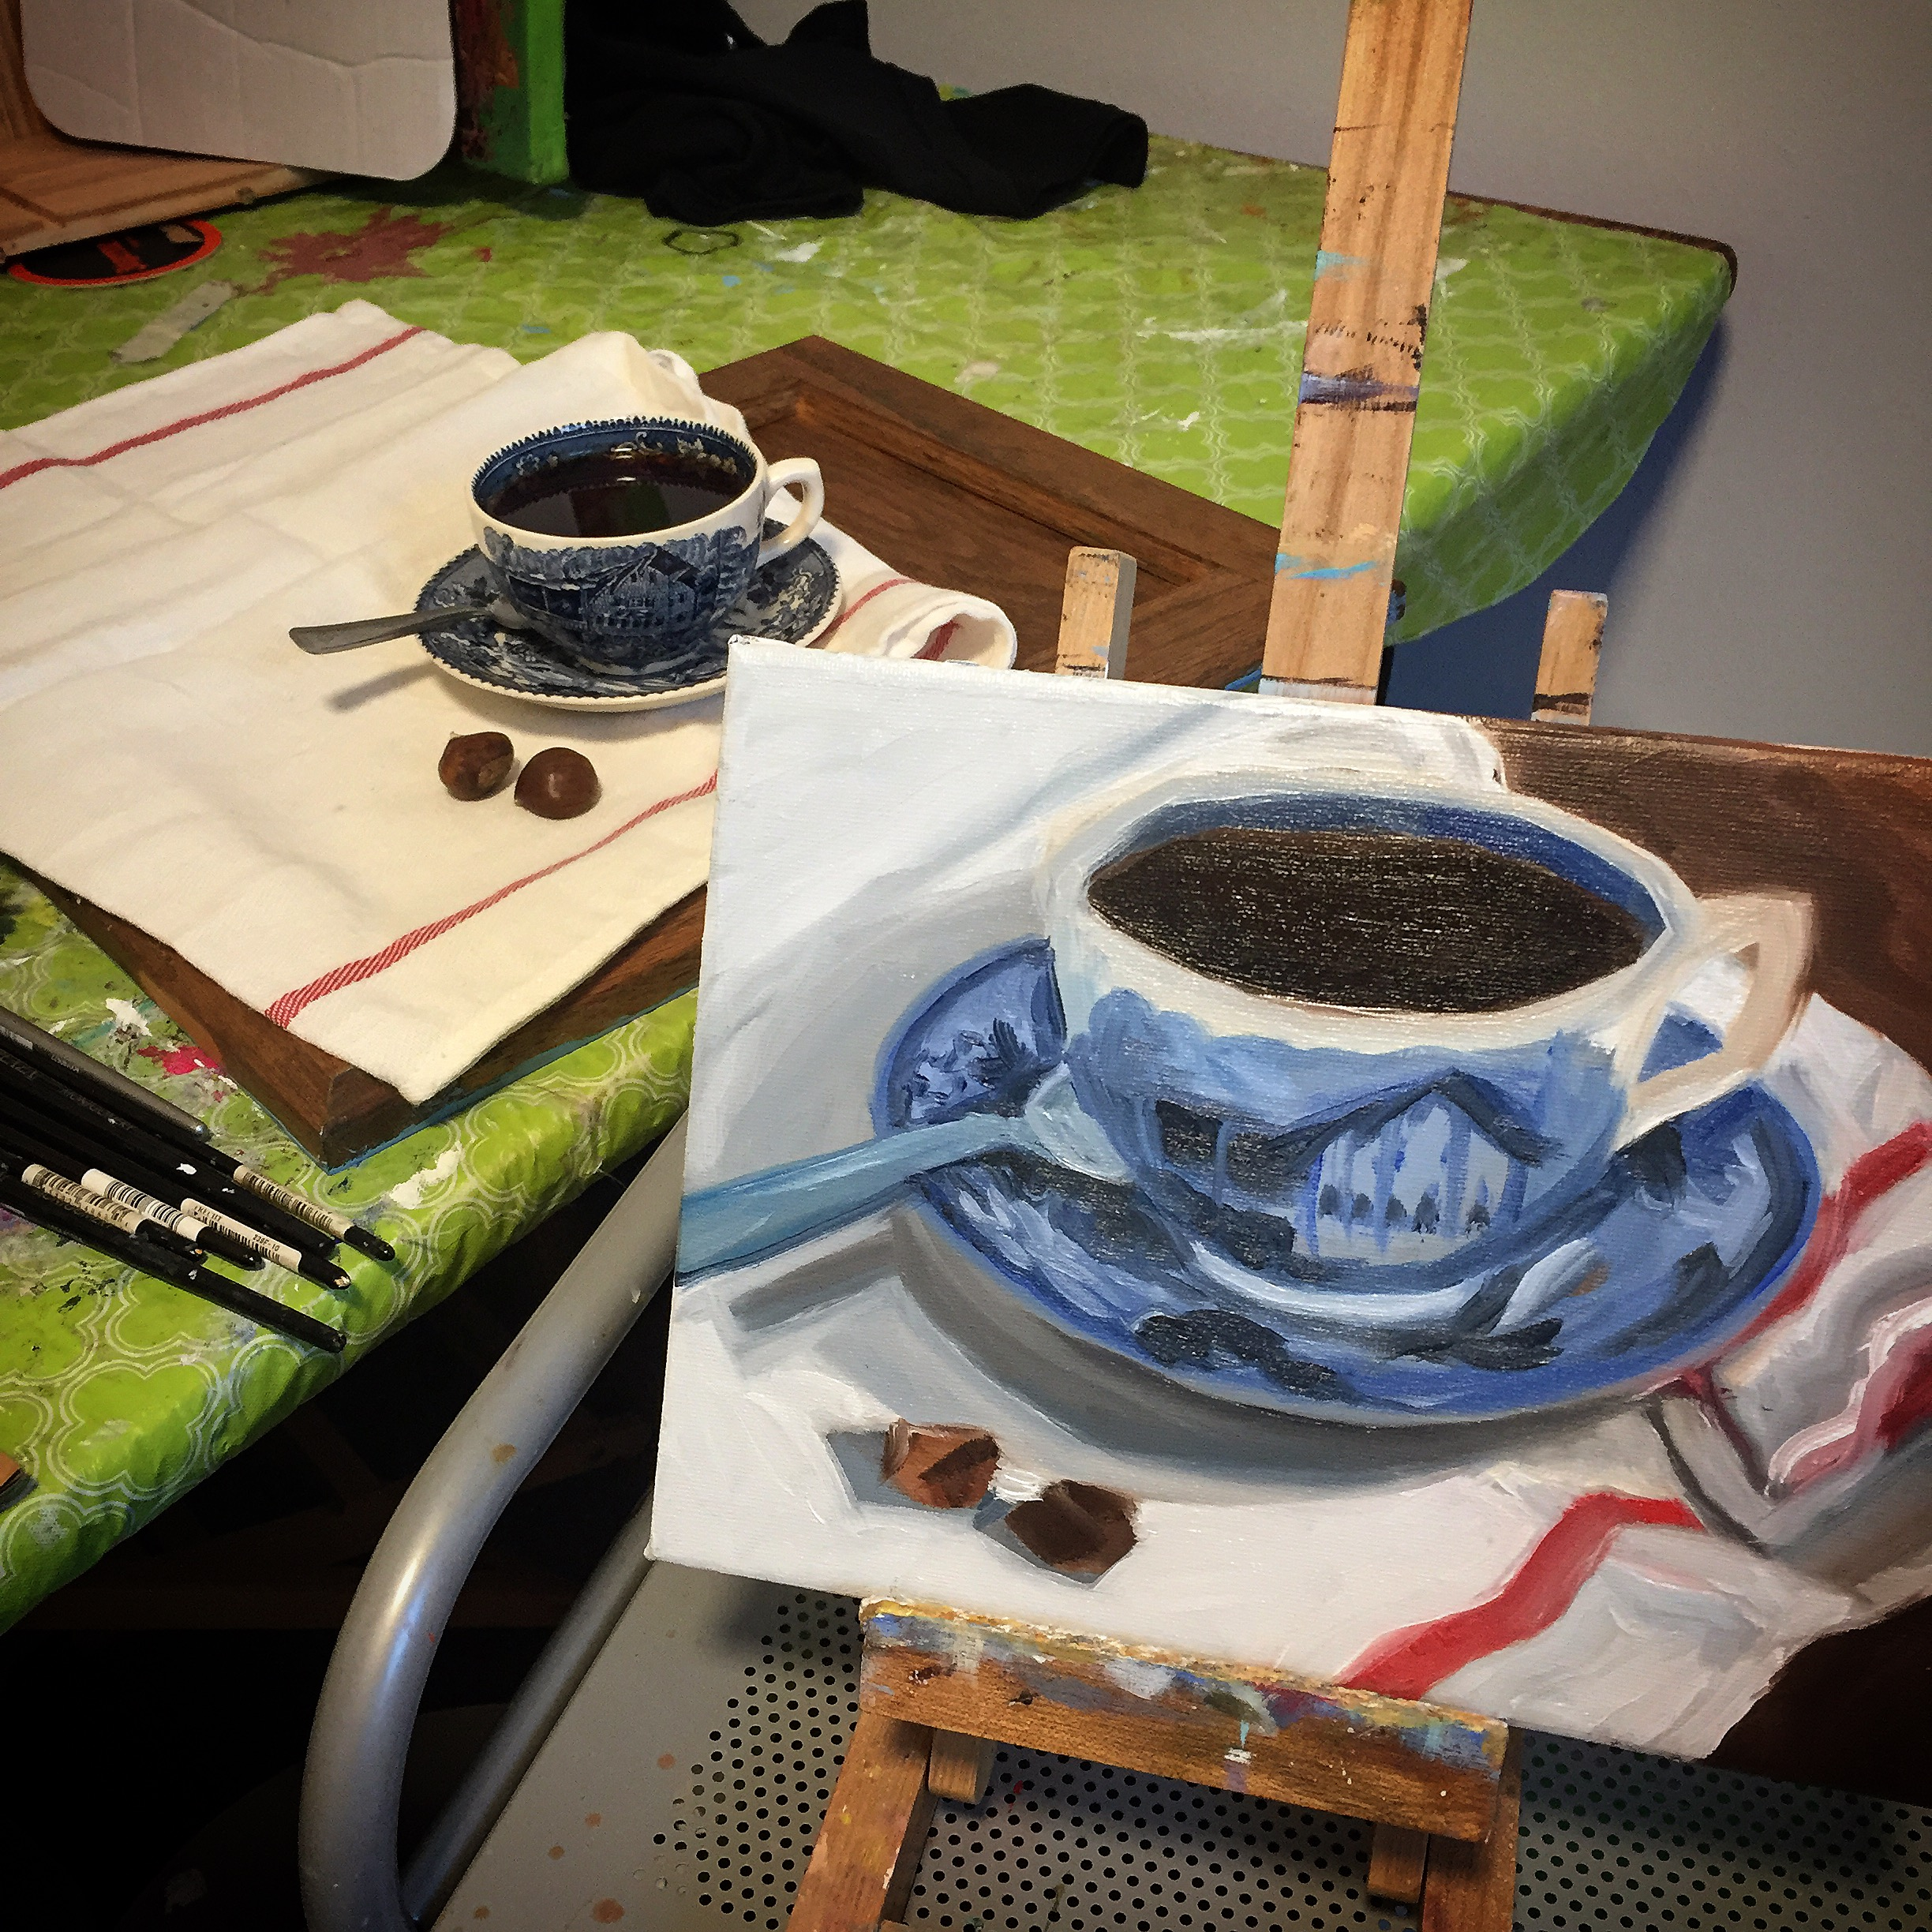 Coffee cup with chestnuts, day 1